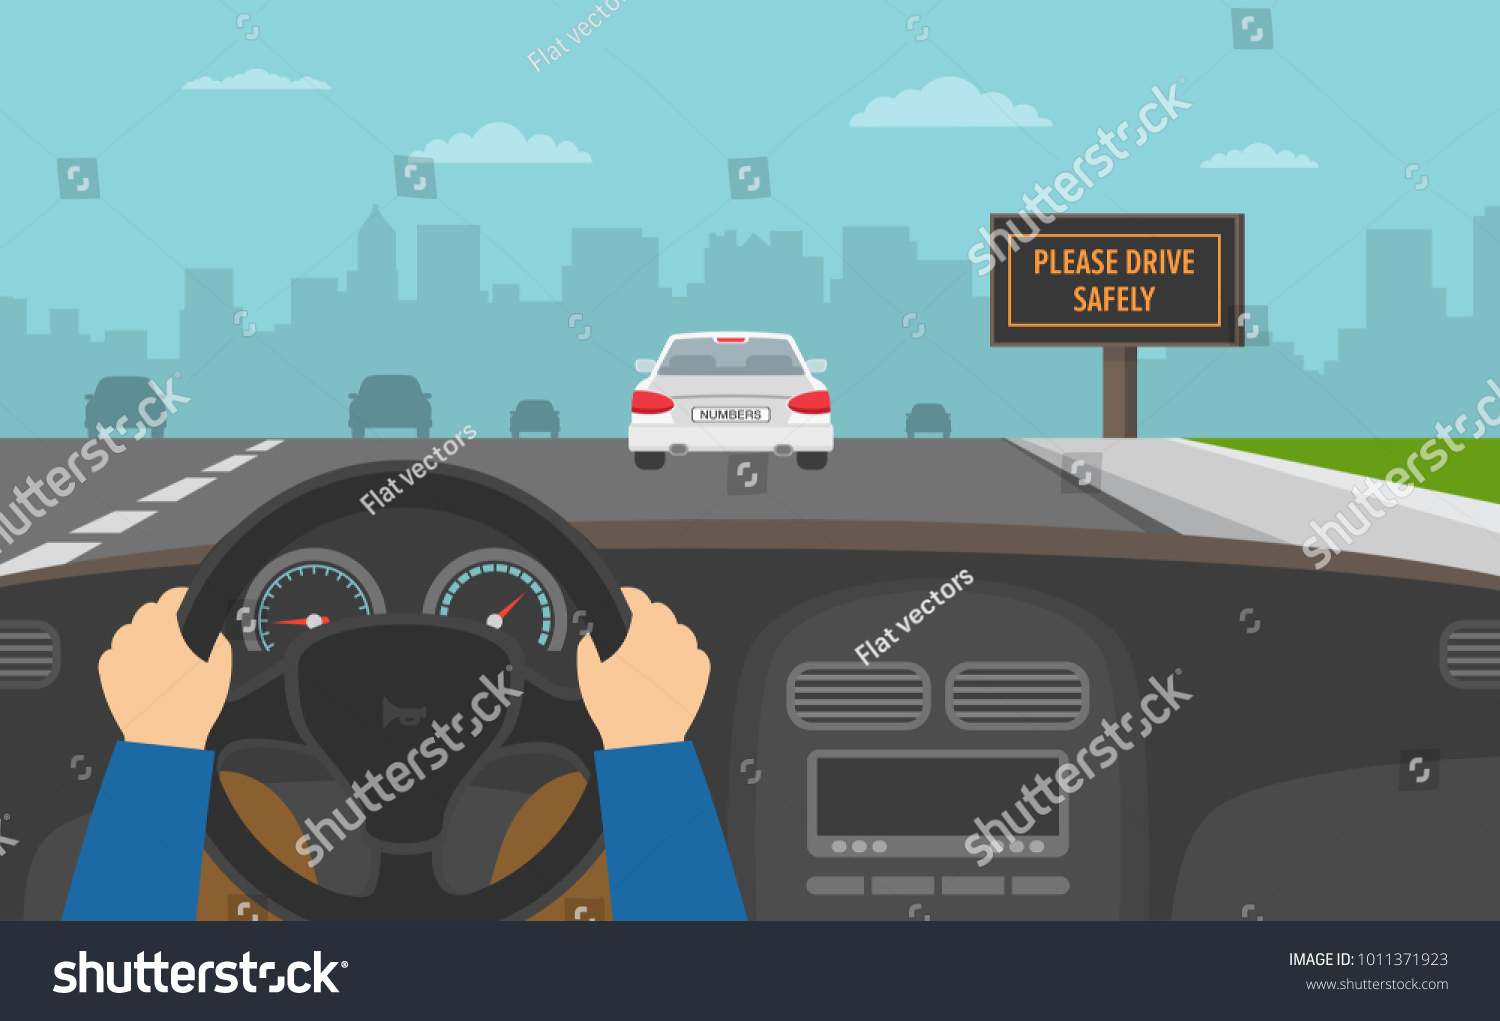 Hands driving a car on the highway. Drive safely warning billboard. Flat vector illustration.